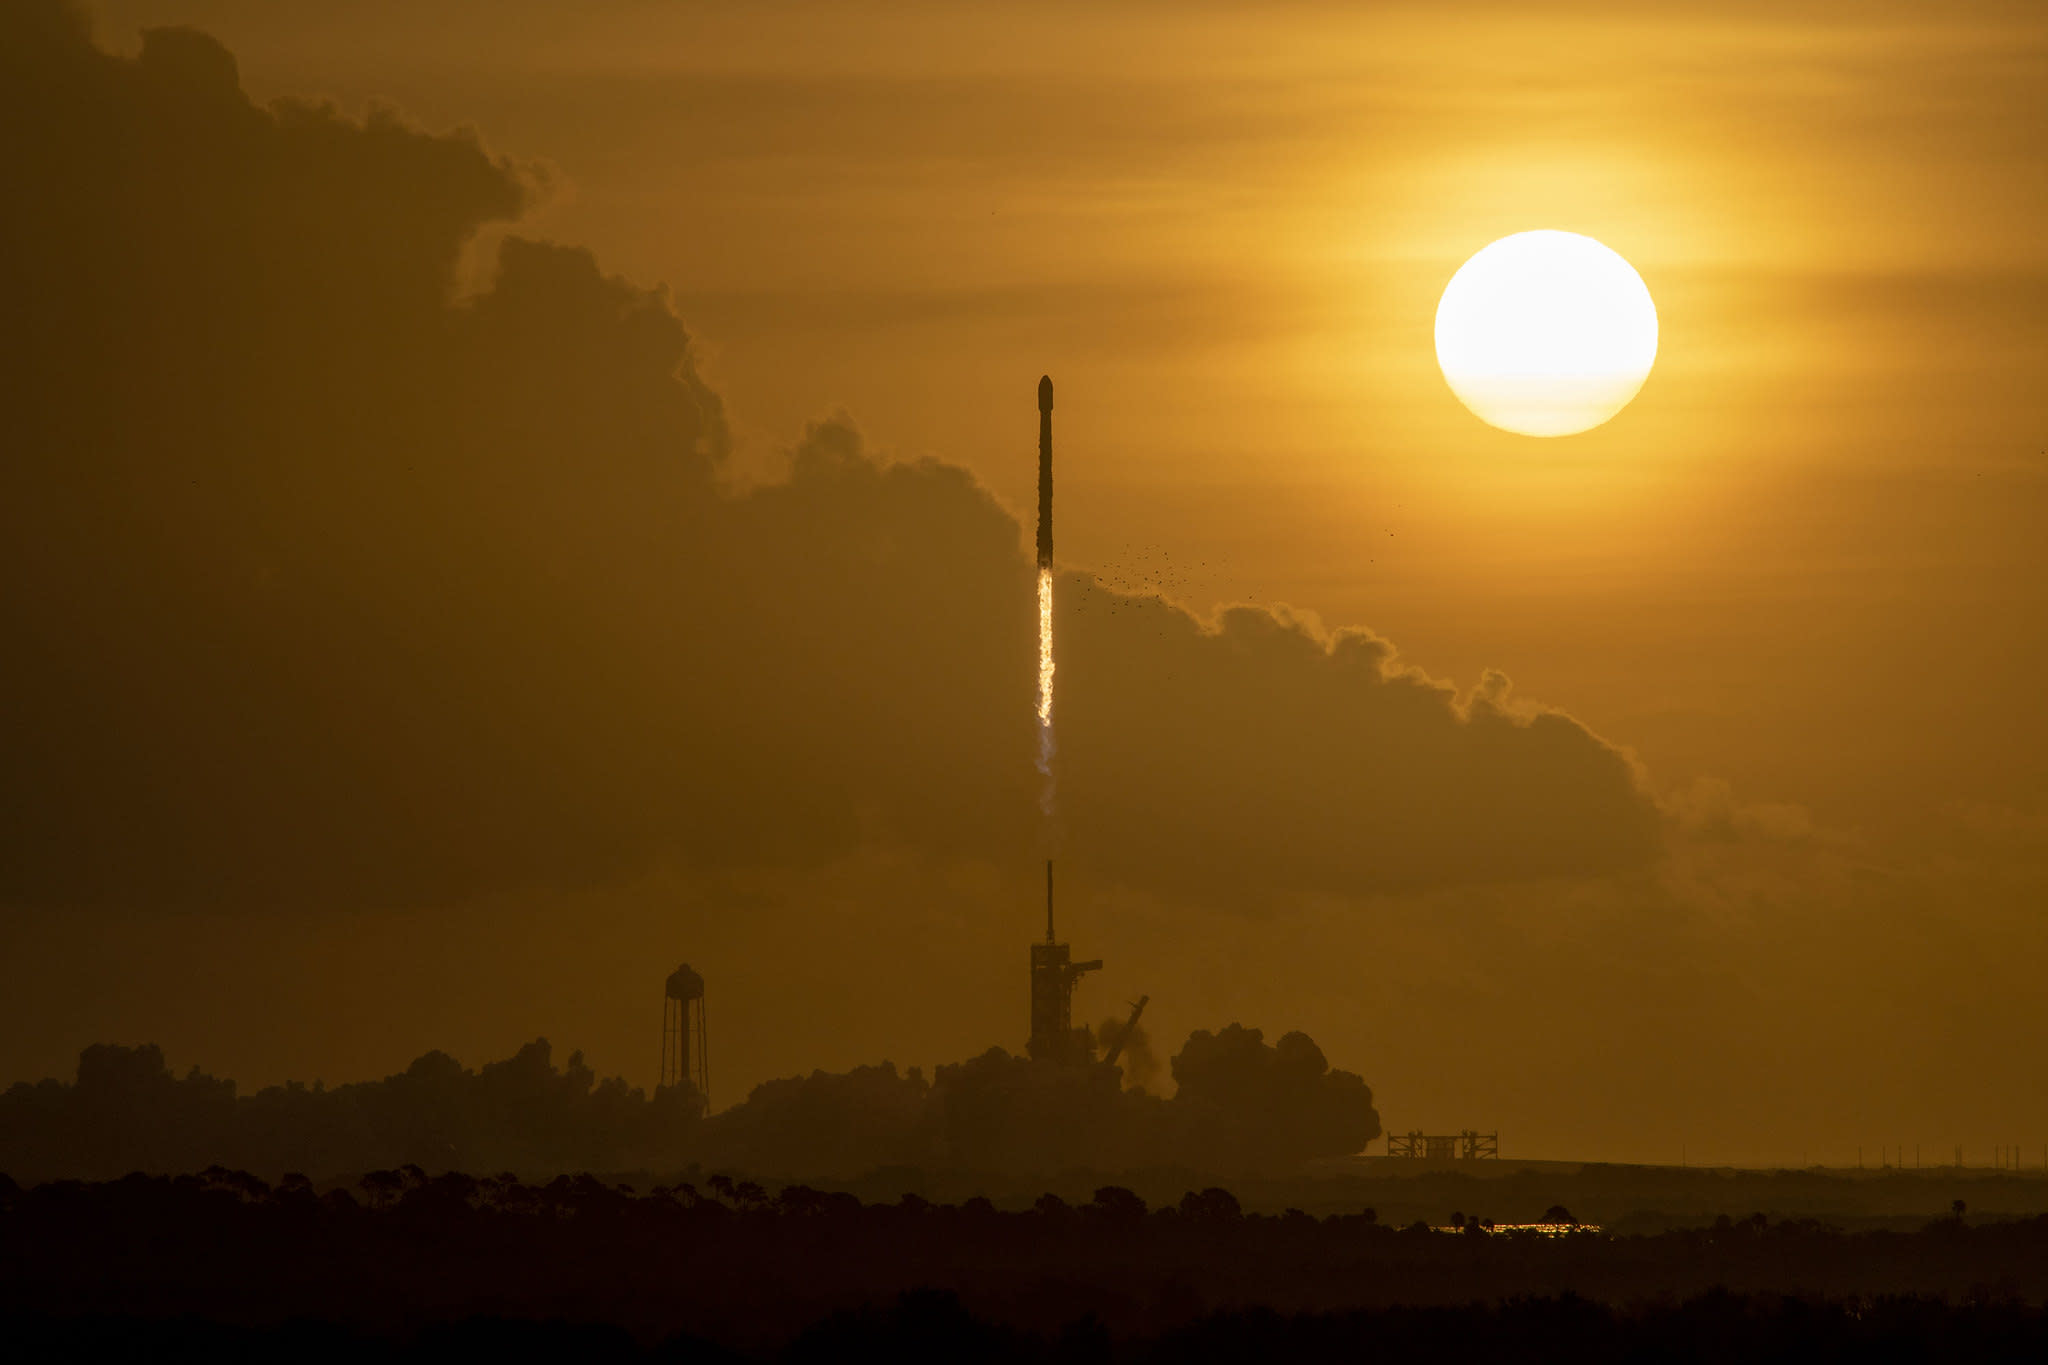 SpaceX awarded contract to help develop U.S. missile-tracking satellite network – Yahoo News Australia